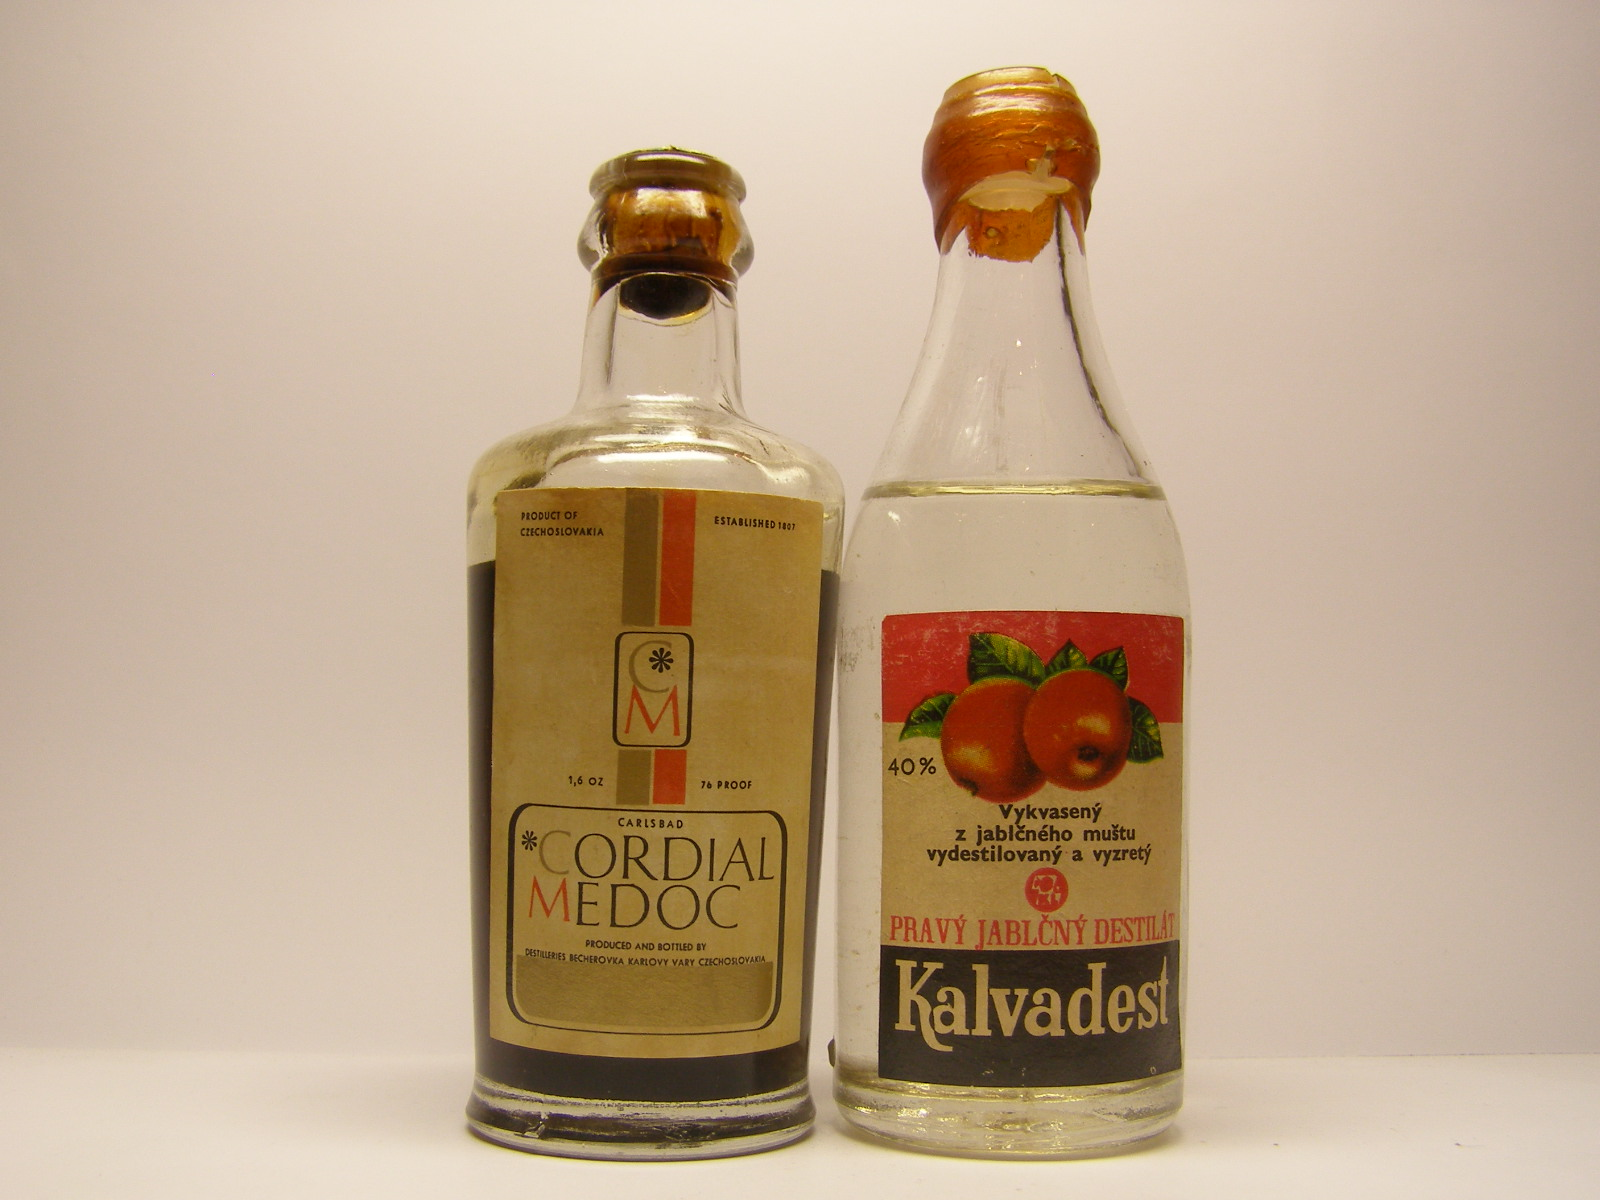 CORDIAL MEDOC , KALVADEST